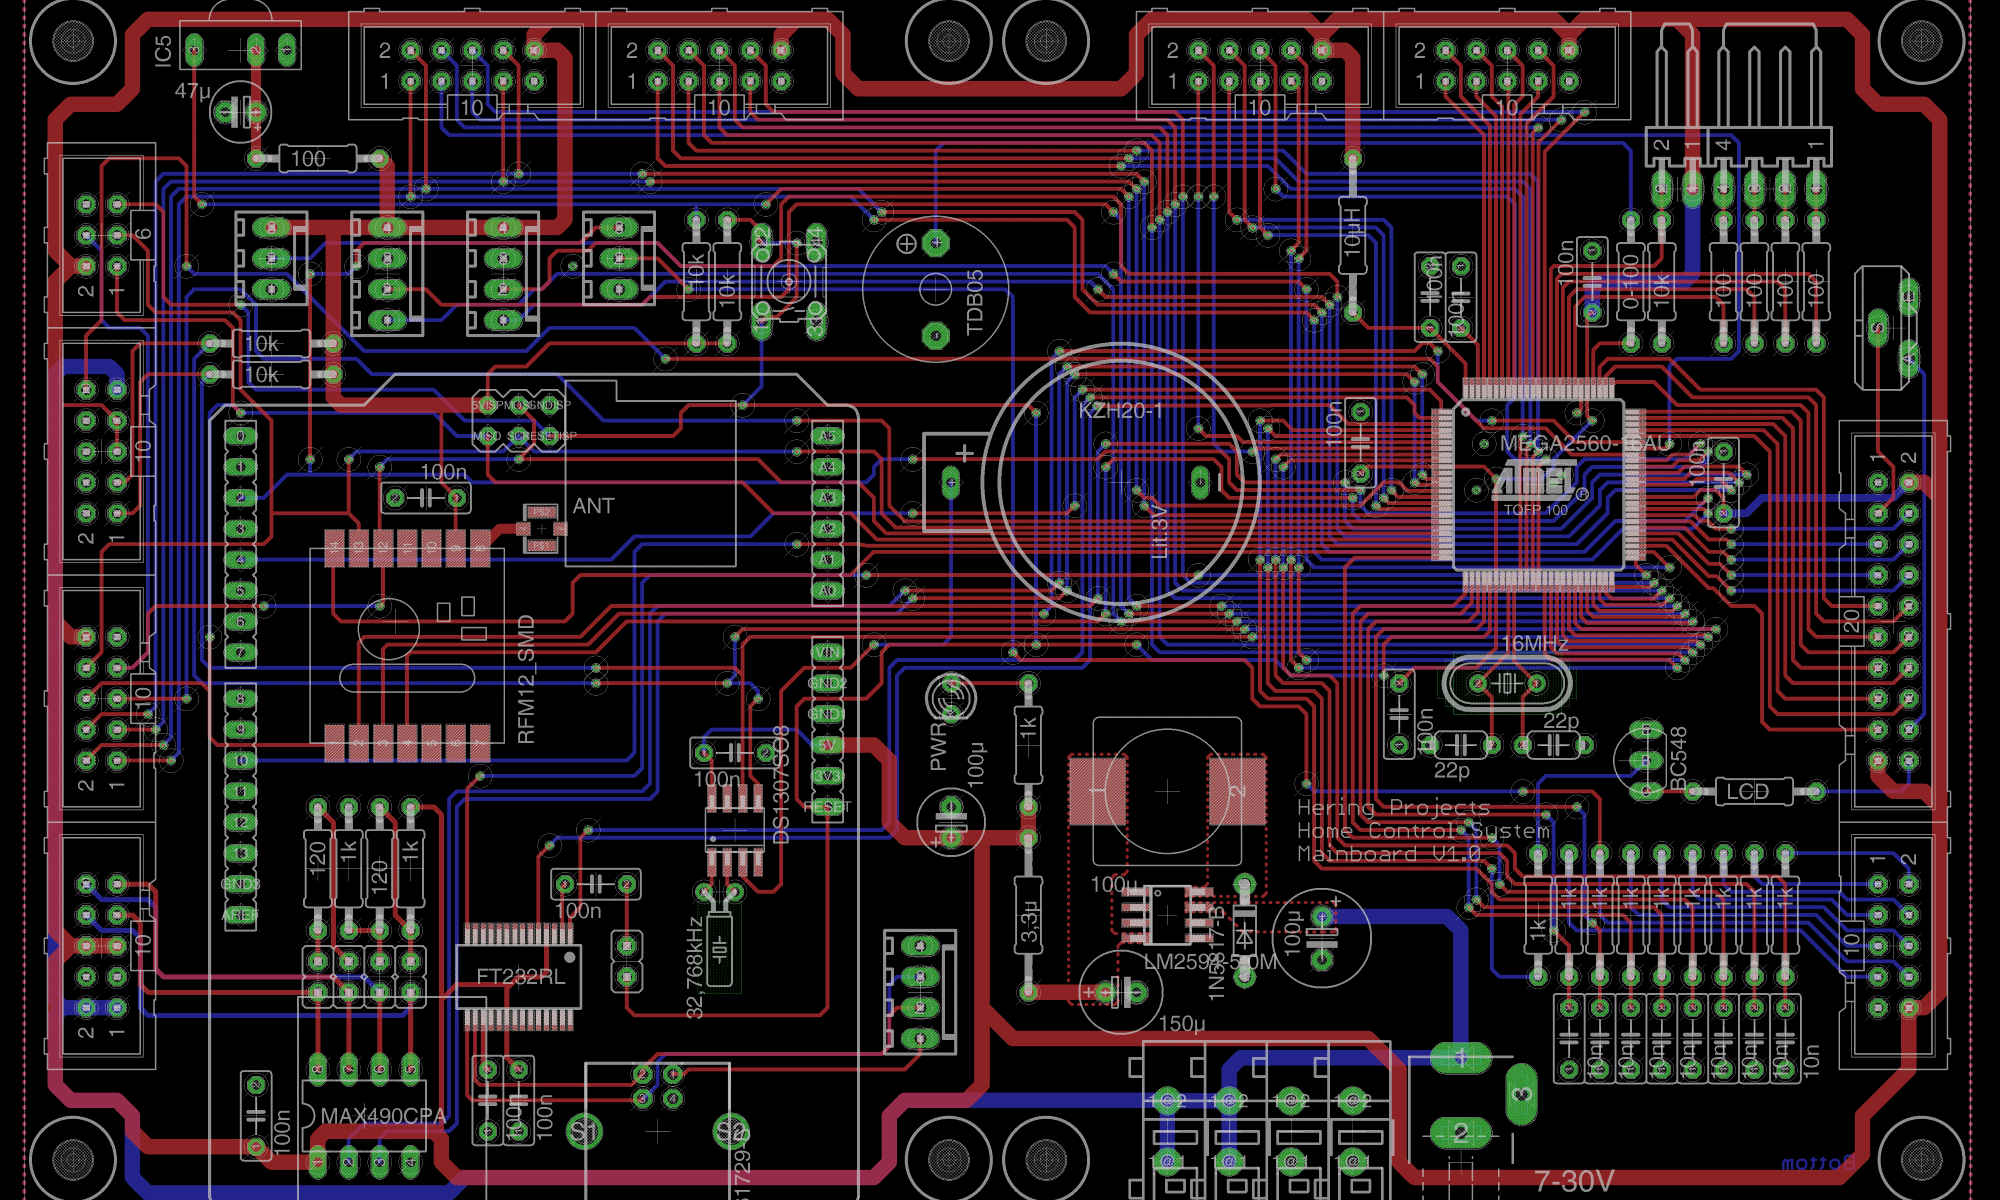 Home Control System Mainboard V1.0